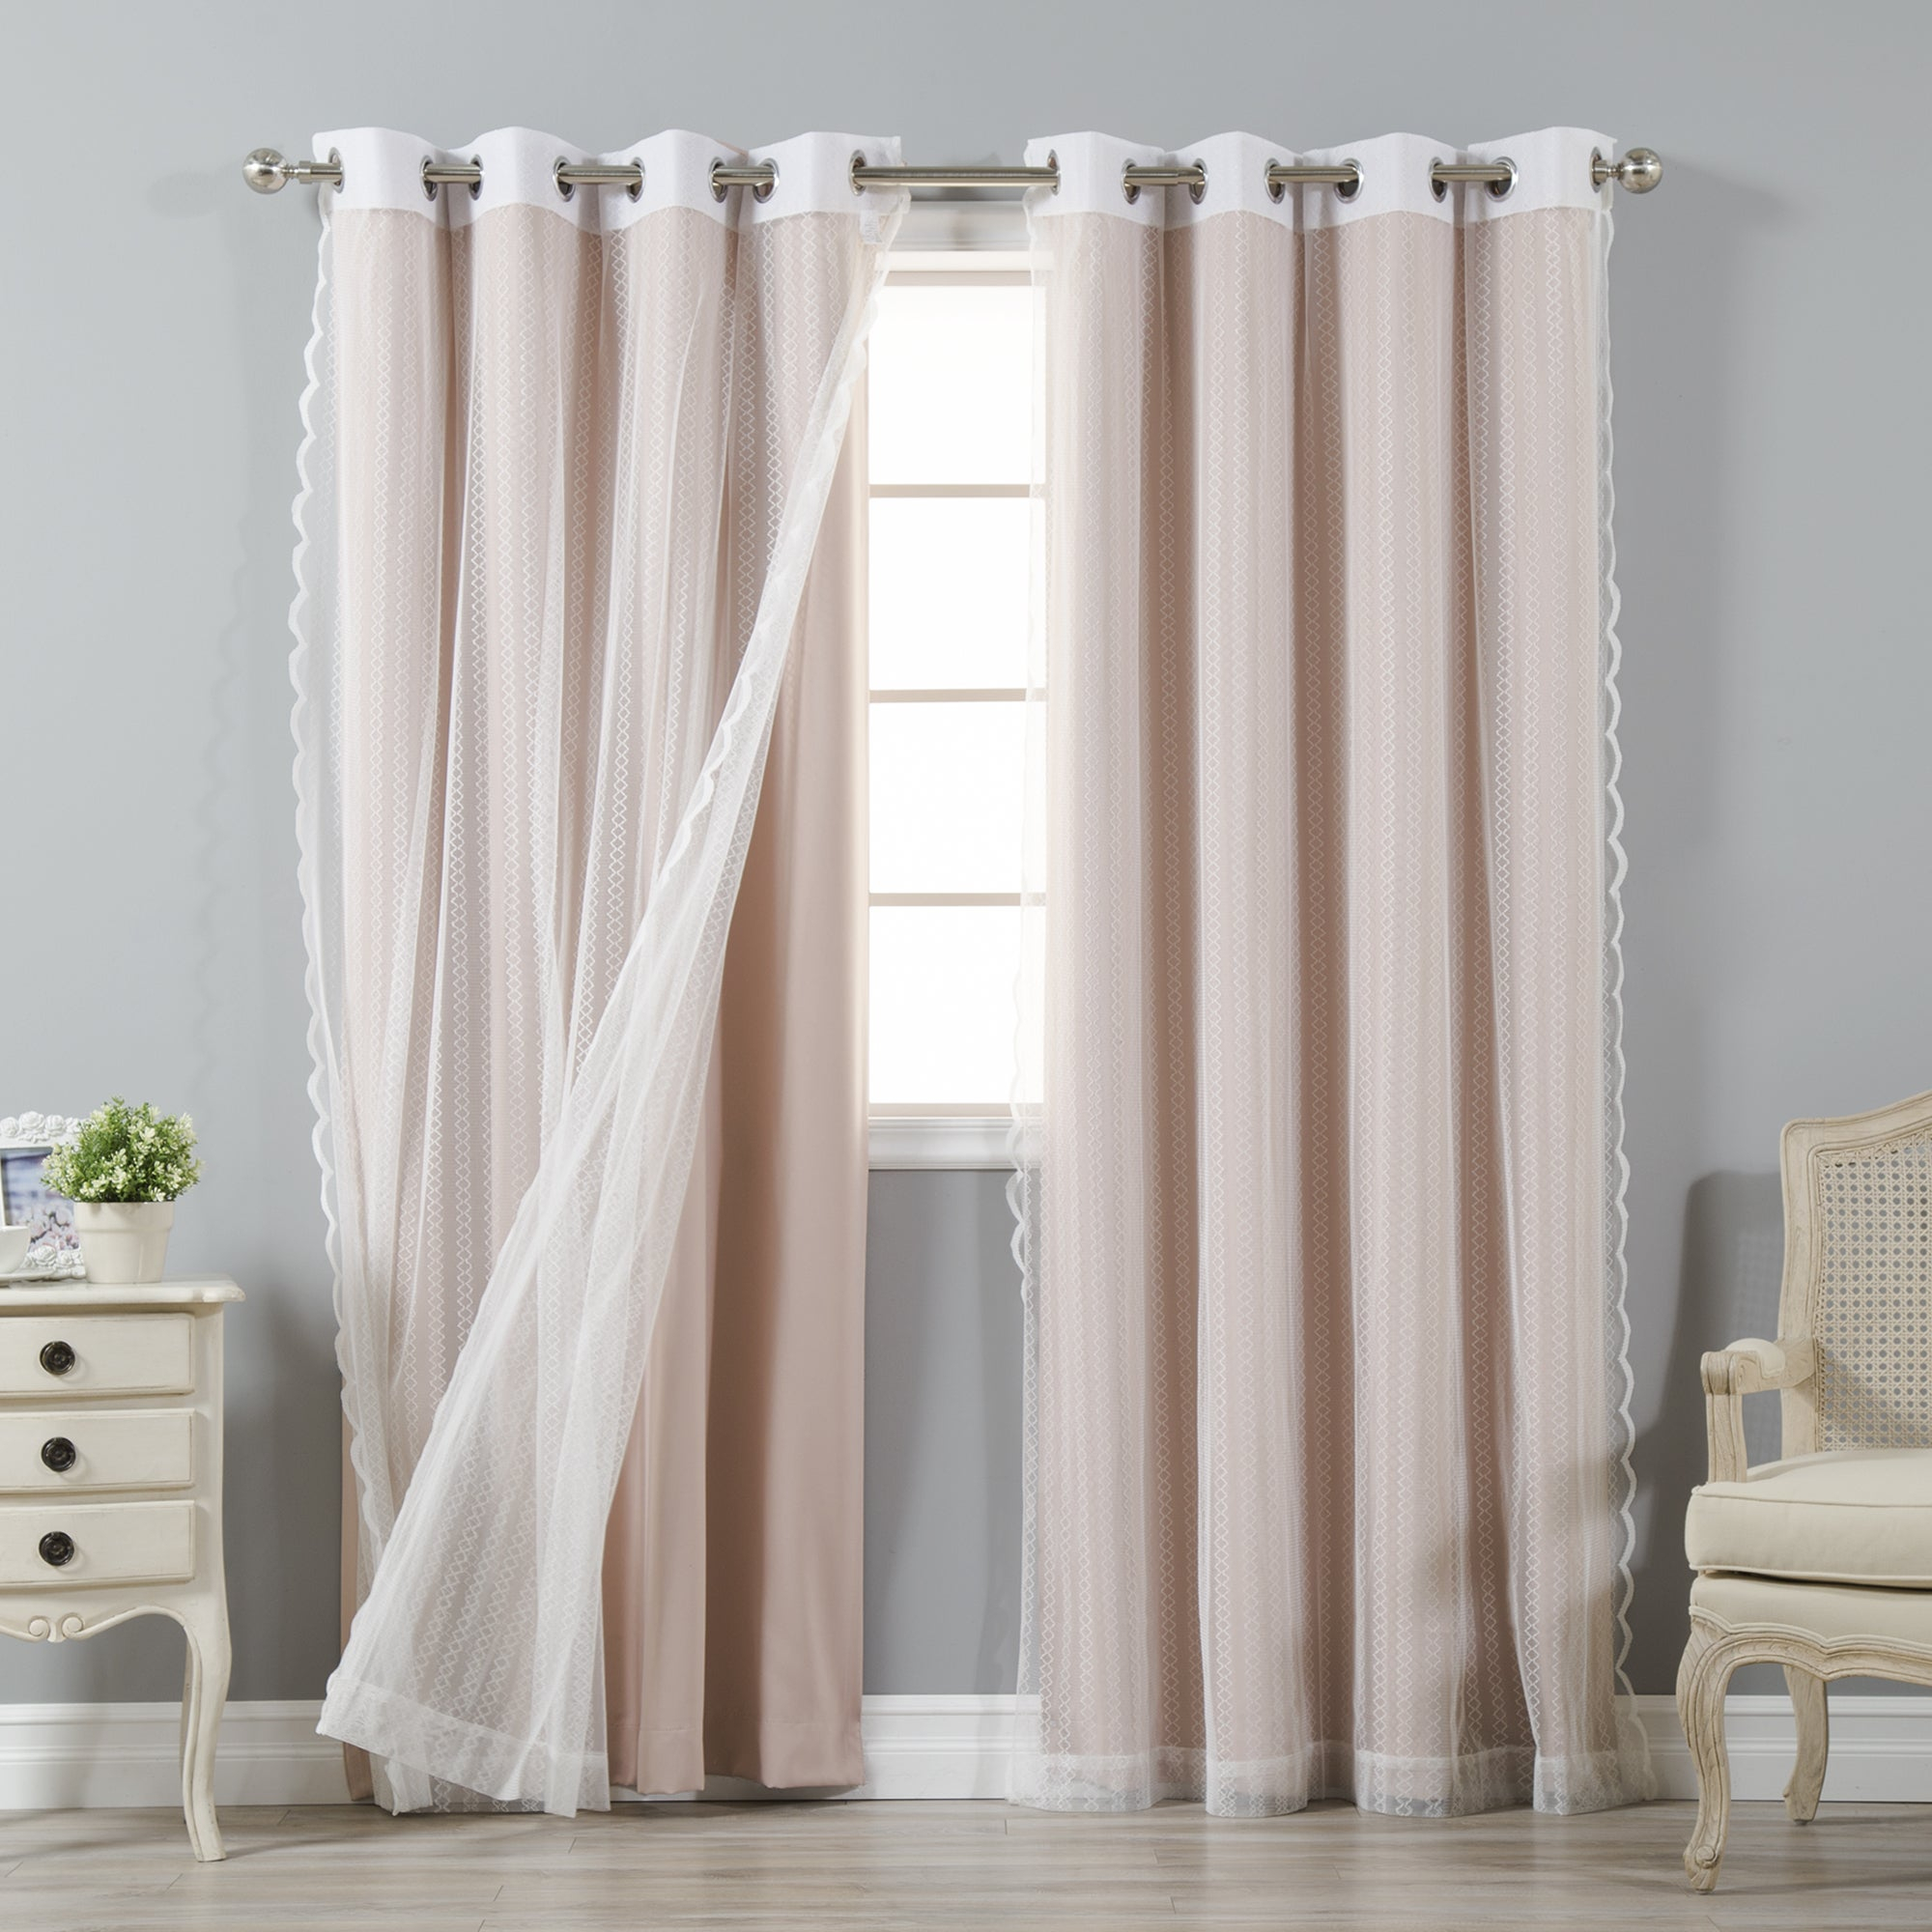 Details About Aurora Home Mix & Match Blackout And Zigzag Lace 4 Piece Throughout Mix And Match Blackout Blackout Curtains Panel Sets (View 18 of 20)